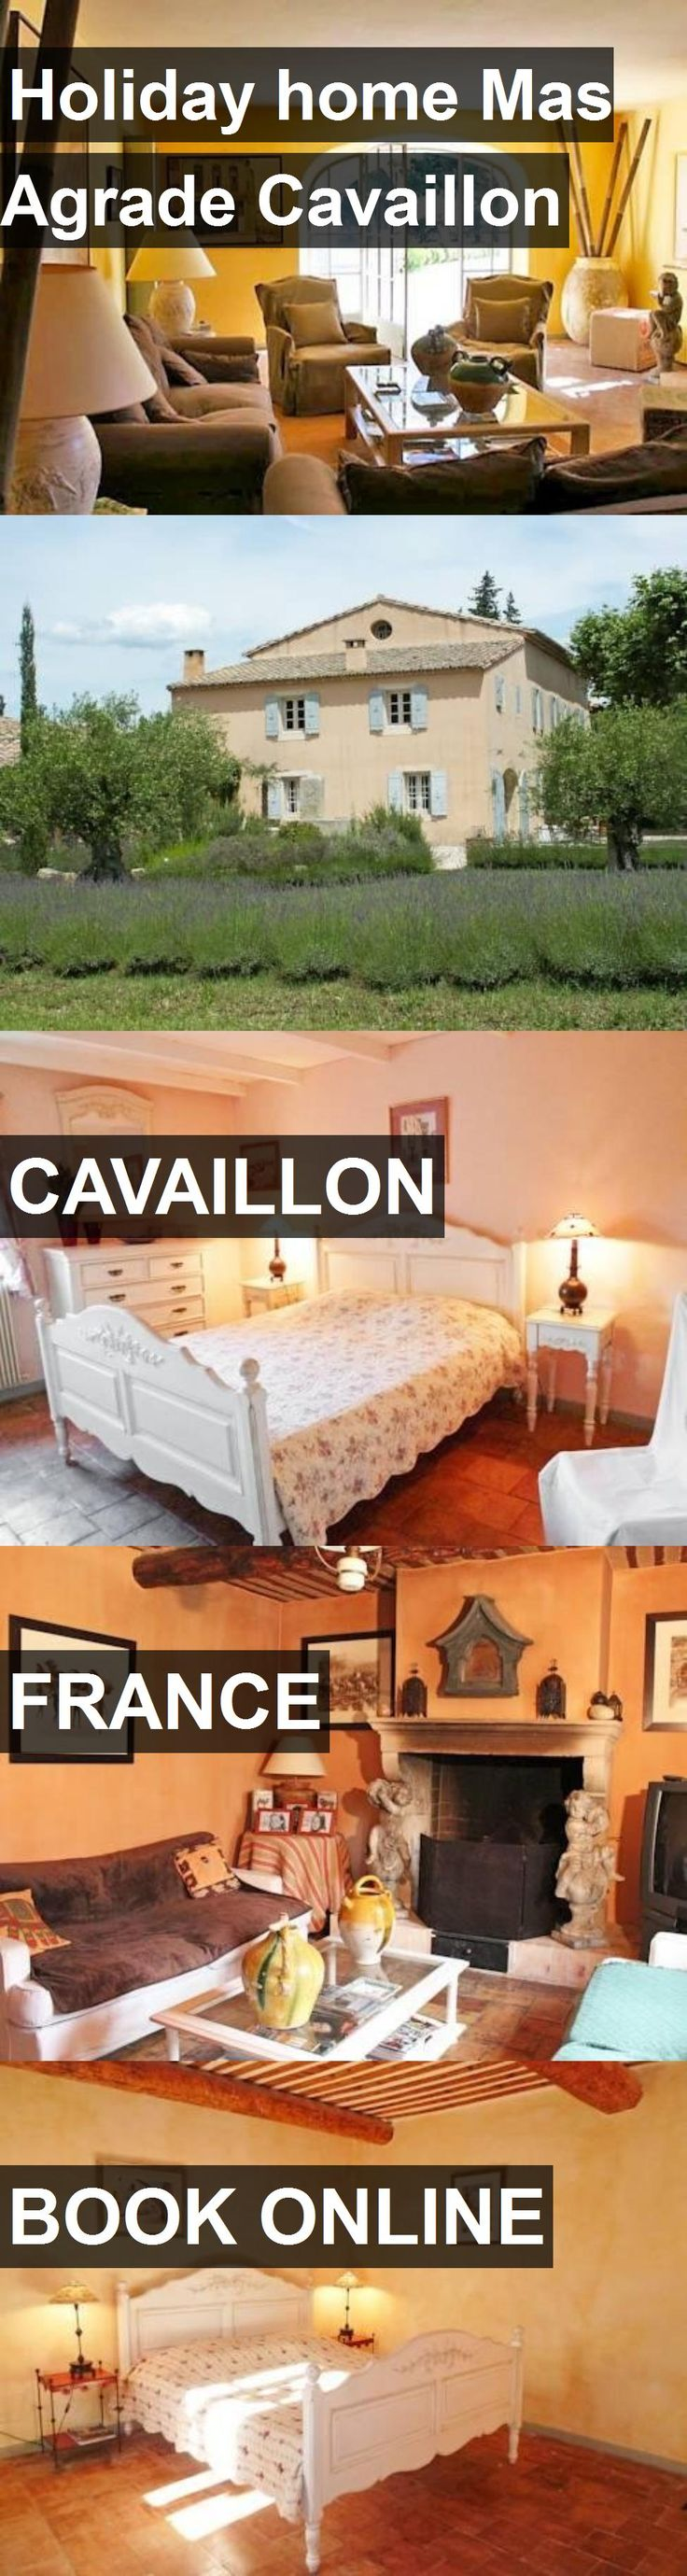 Hotel Holiday home Mas Agrade Cavaillon in Cavaillon, France. For more information, photos, reviews and best prices please follow the link. #France #Cavaillon #HolidayhomeMasAgradeCavaillon #hotel #travel #vacation